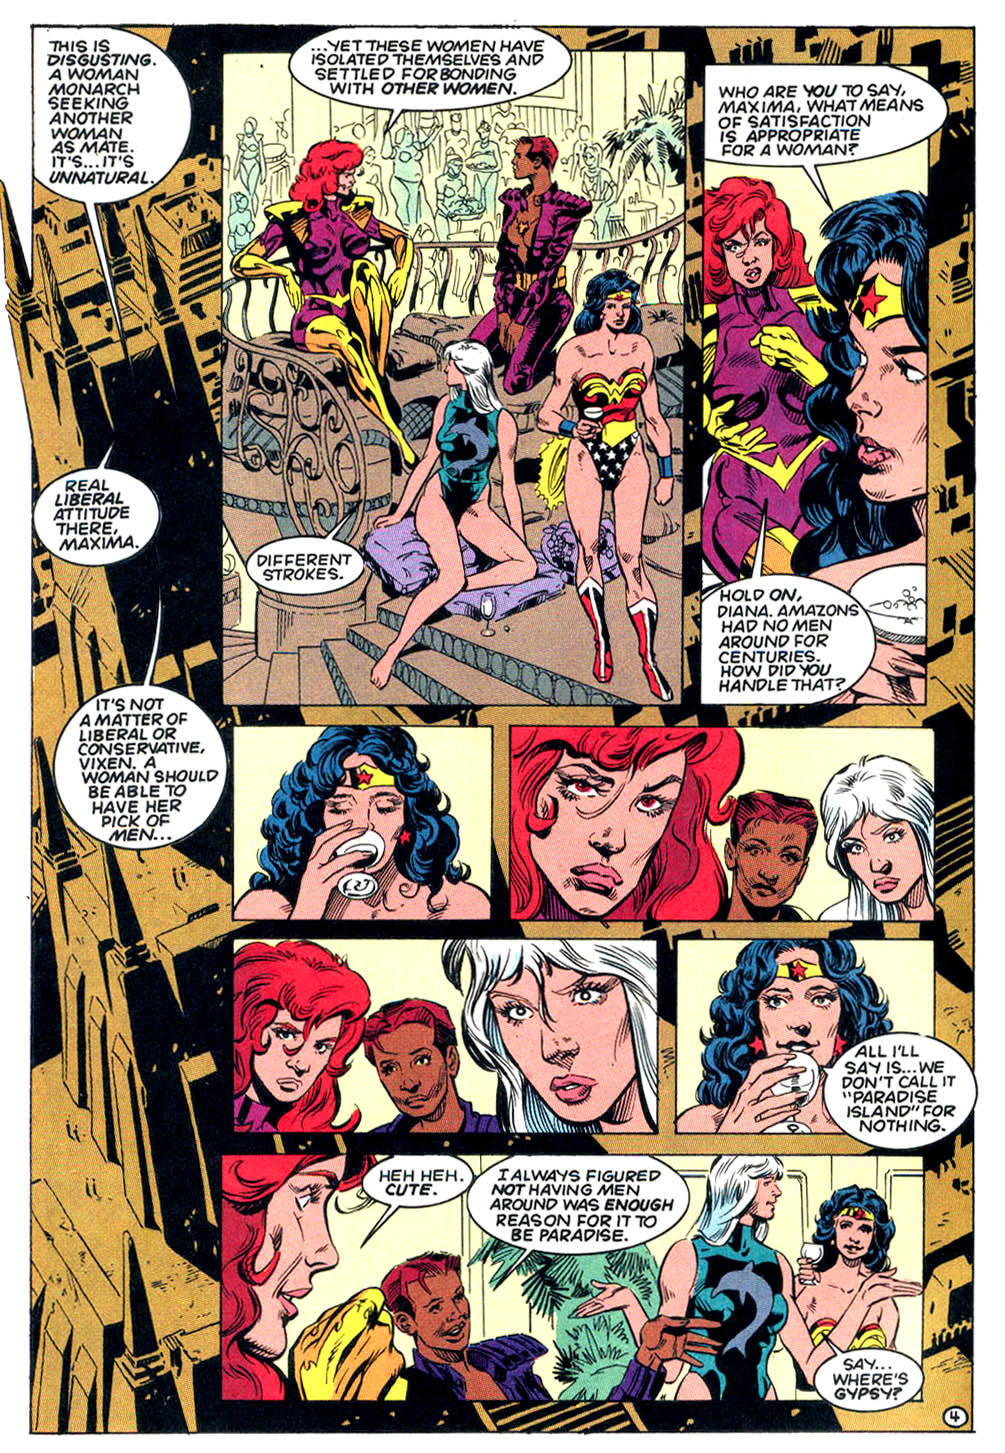 Justice League Task Force Mujer Maravilla lesbiana